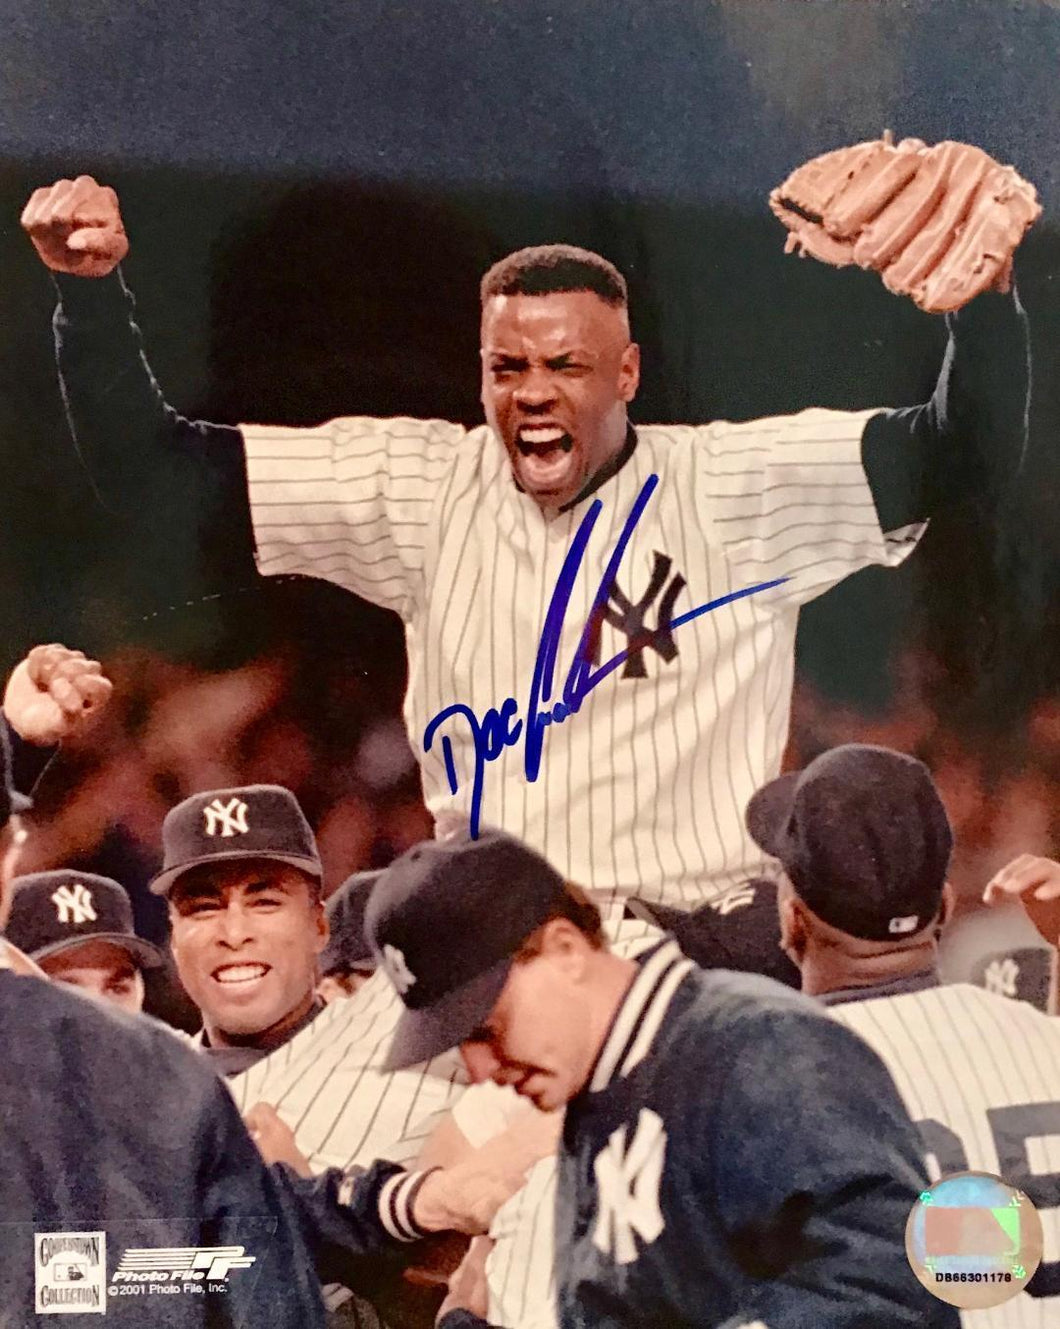 Dwight Gooden Autographed 8x10 photo w Cert of Auth